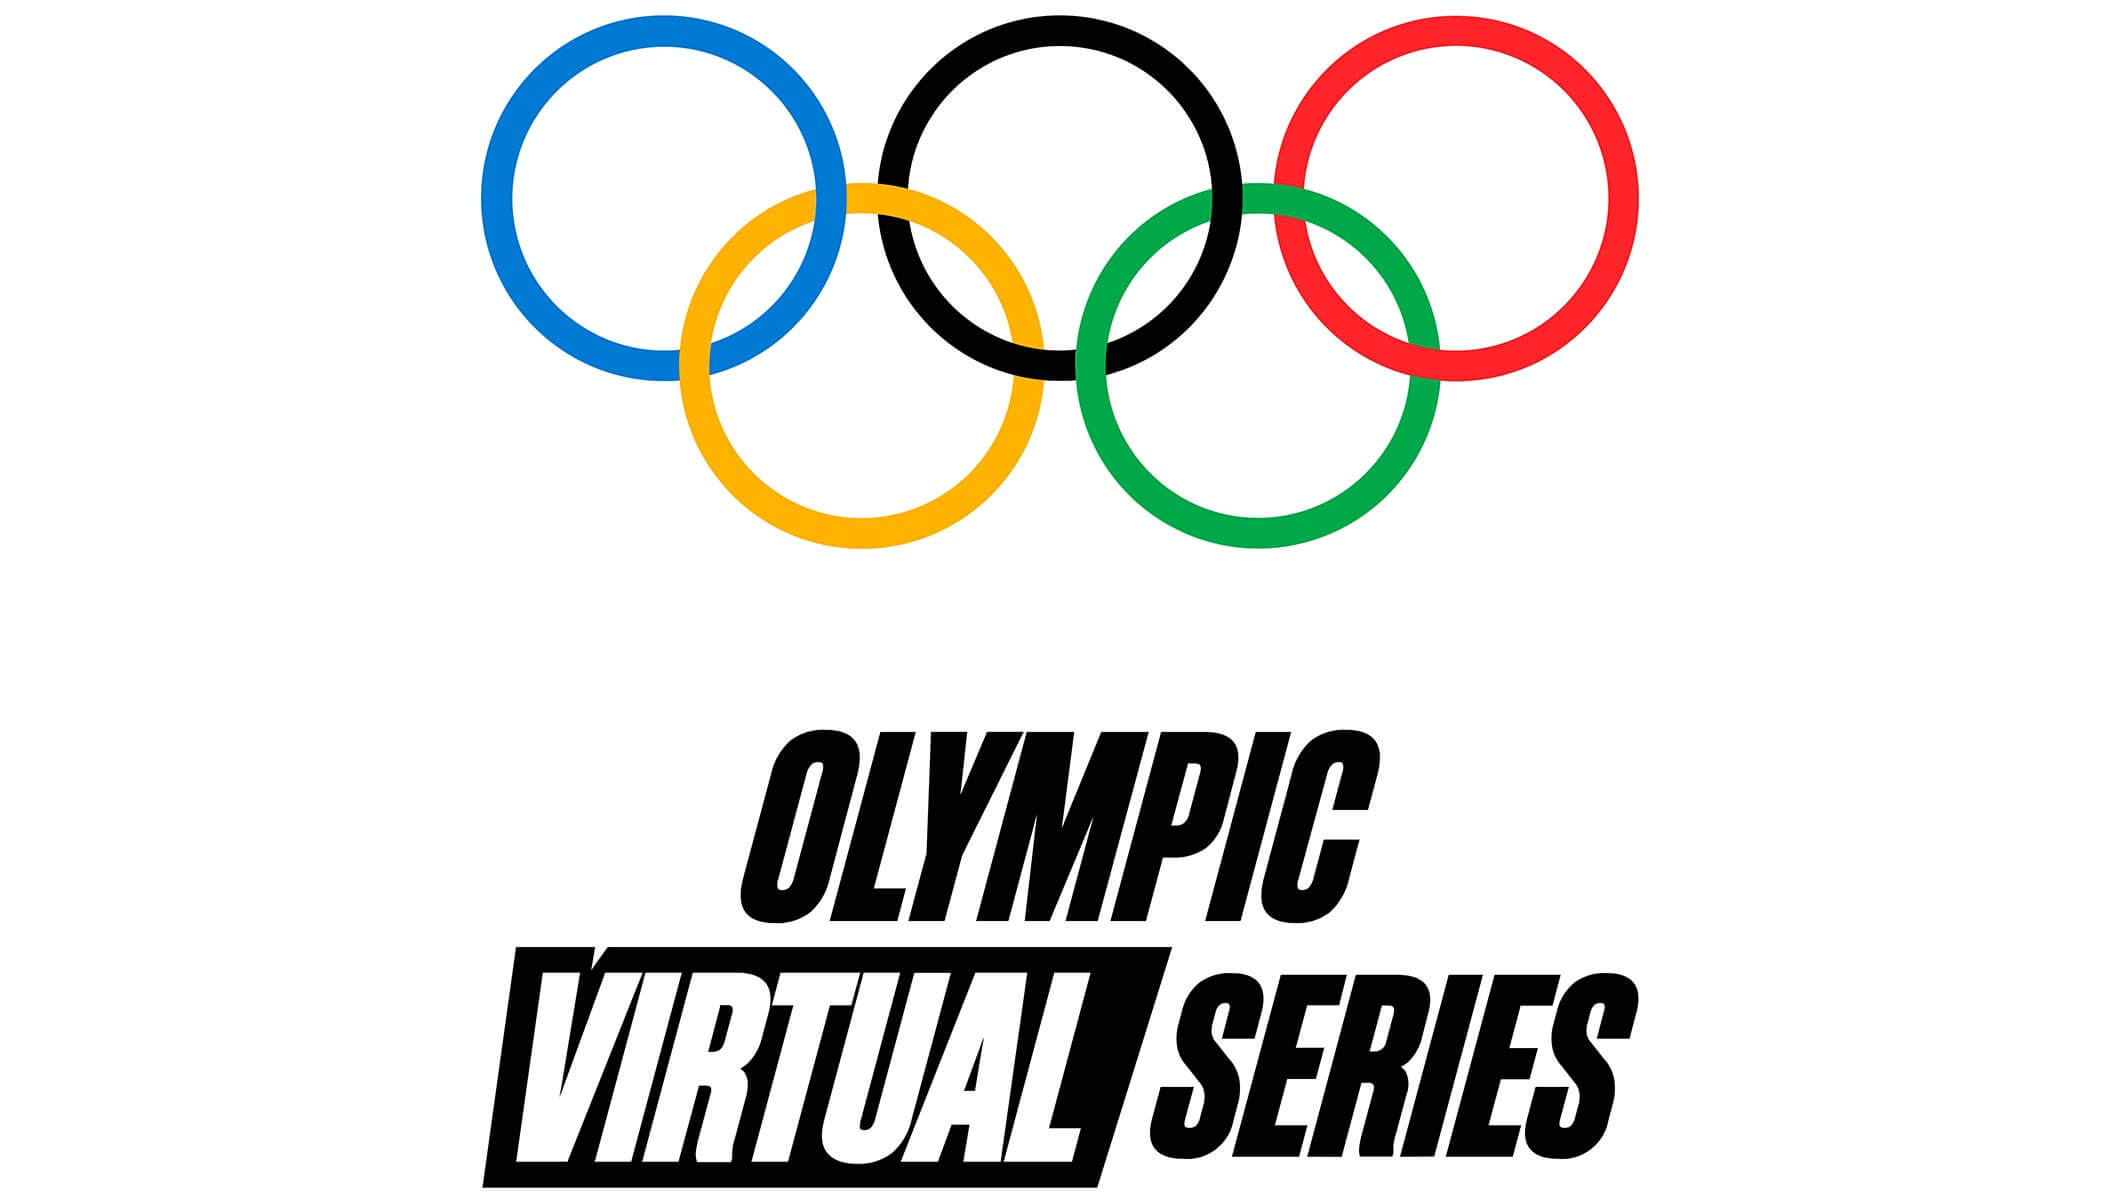 olympic.org